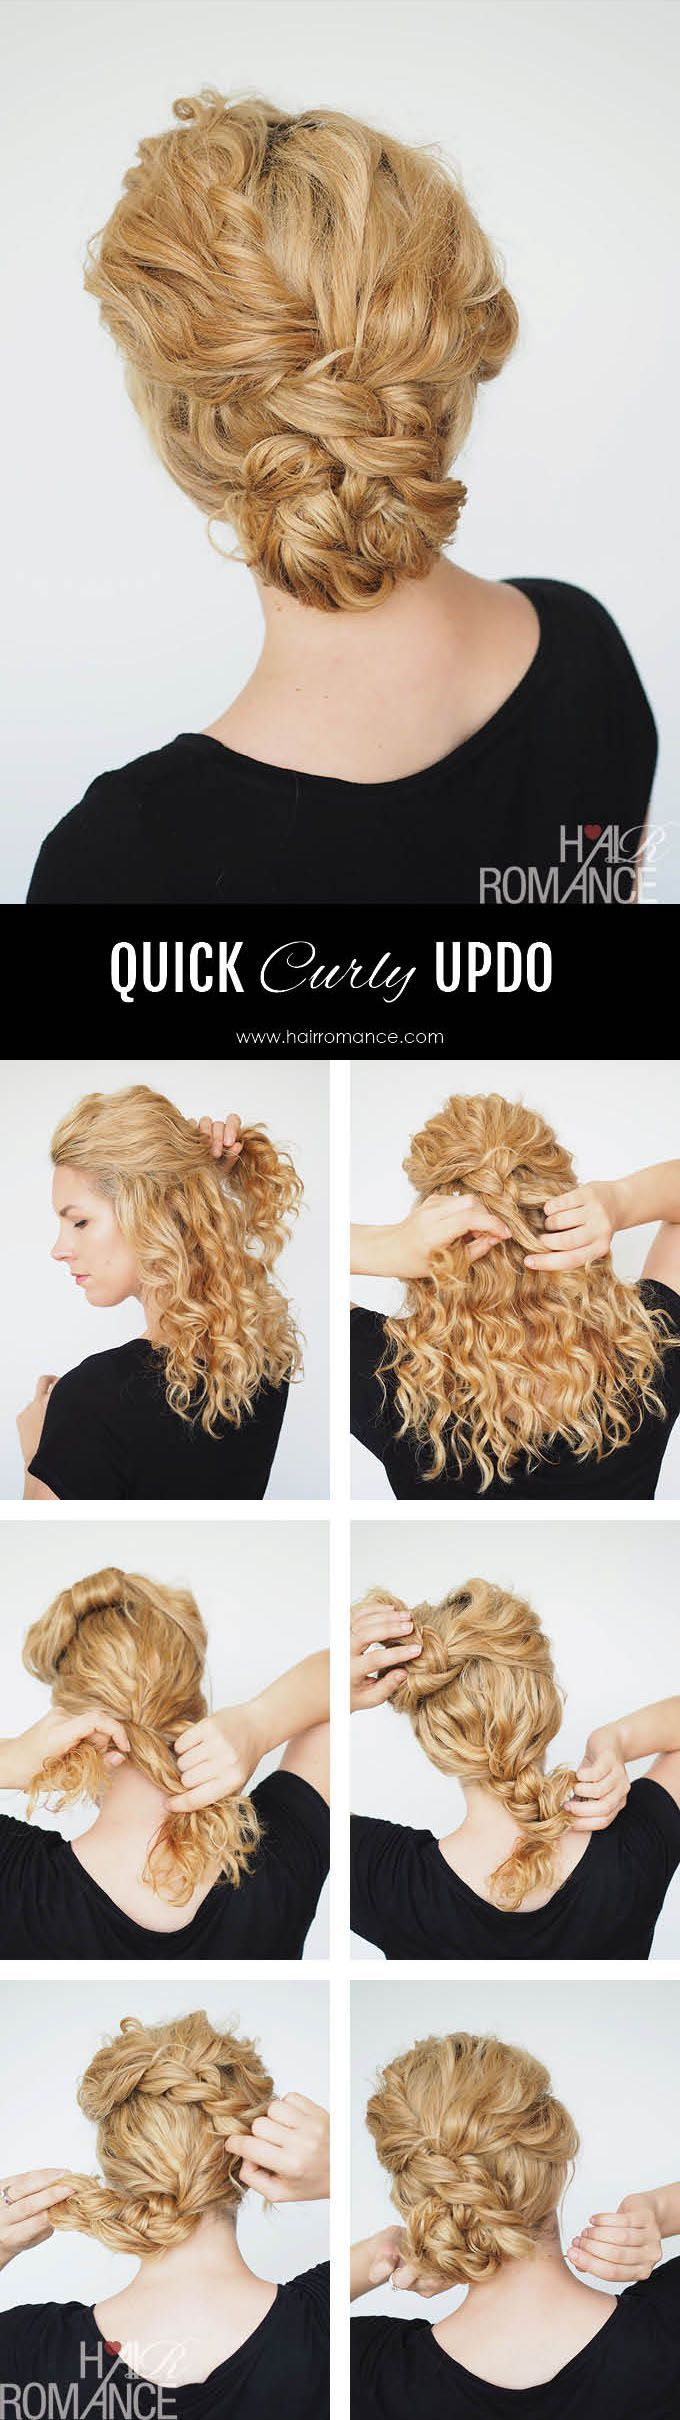 min updo for curly hair hair romance natural curly hair updo